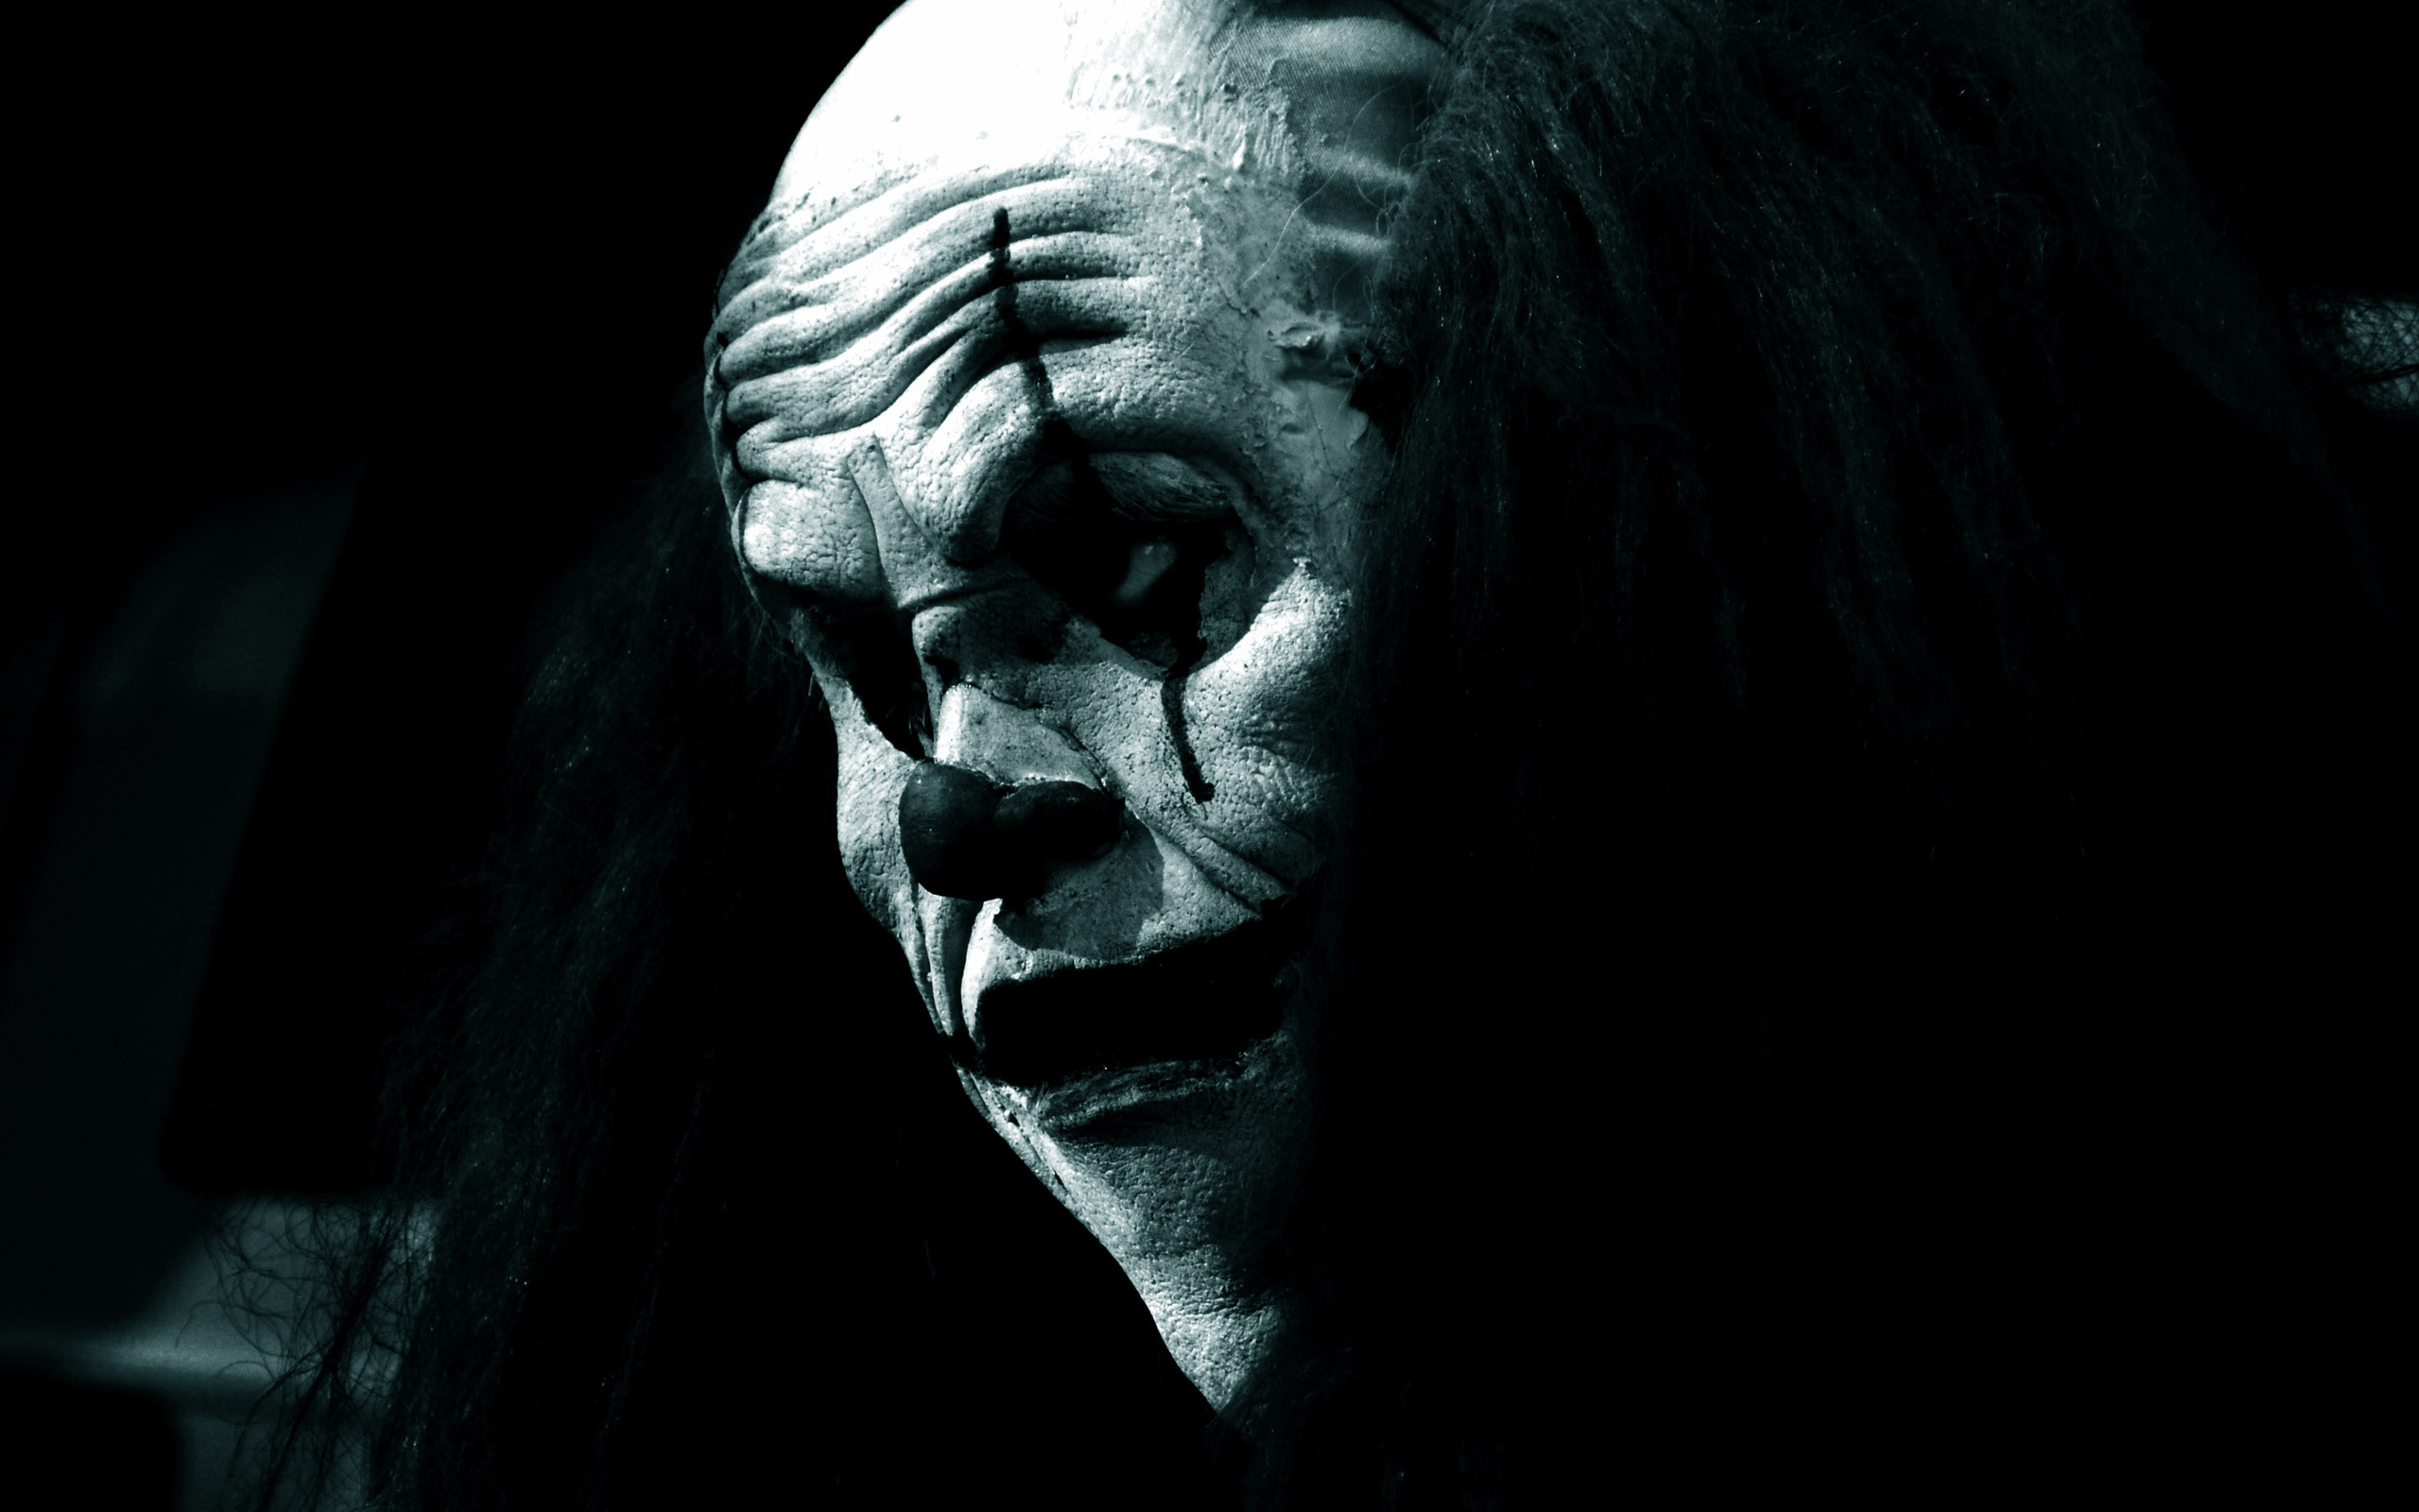 Scary Clown Wallpaper 2560x1600 Wallpapers 3d fr Desktop 3D Bilder 2559x1600